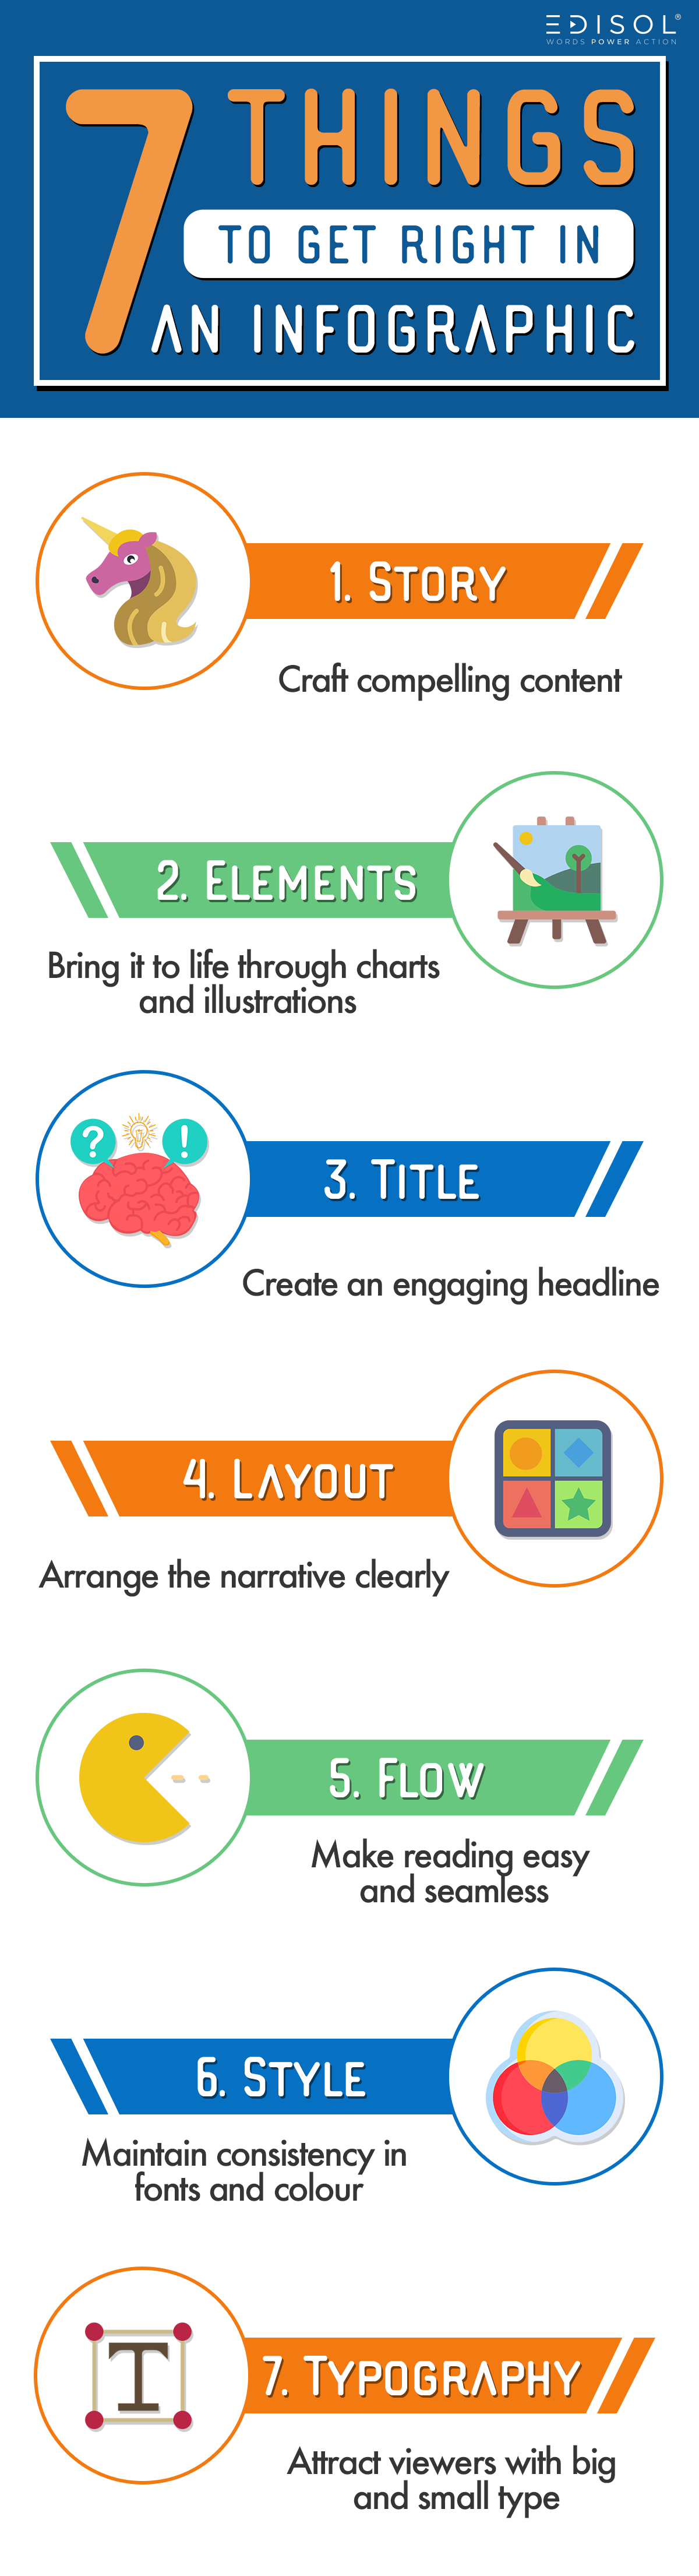 Edisol_Part2_IG_7 things to get right in an infographic_v6.png